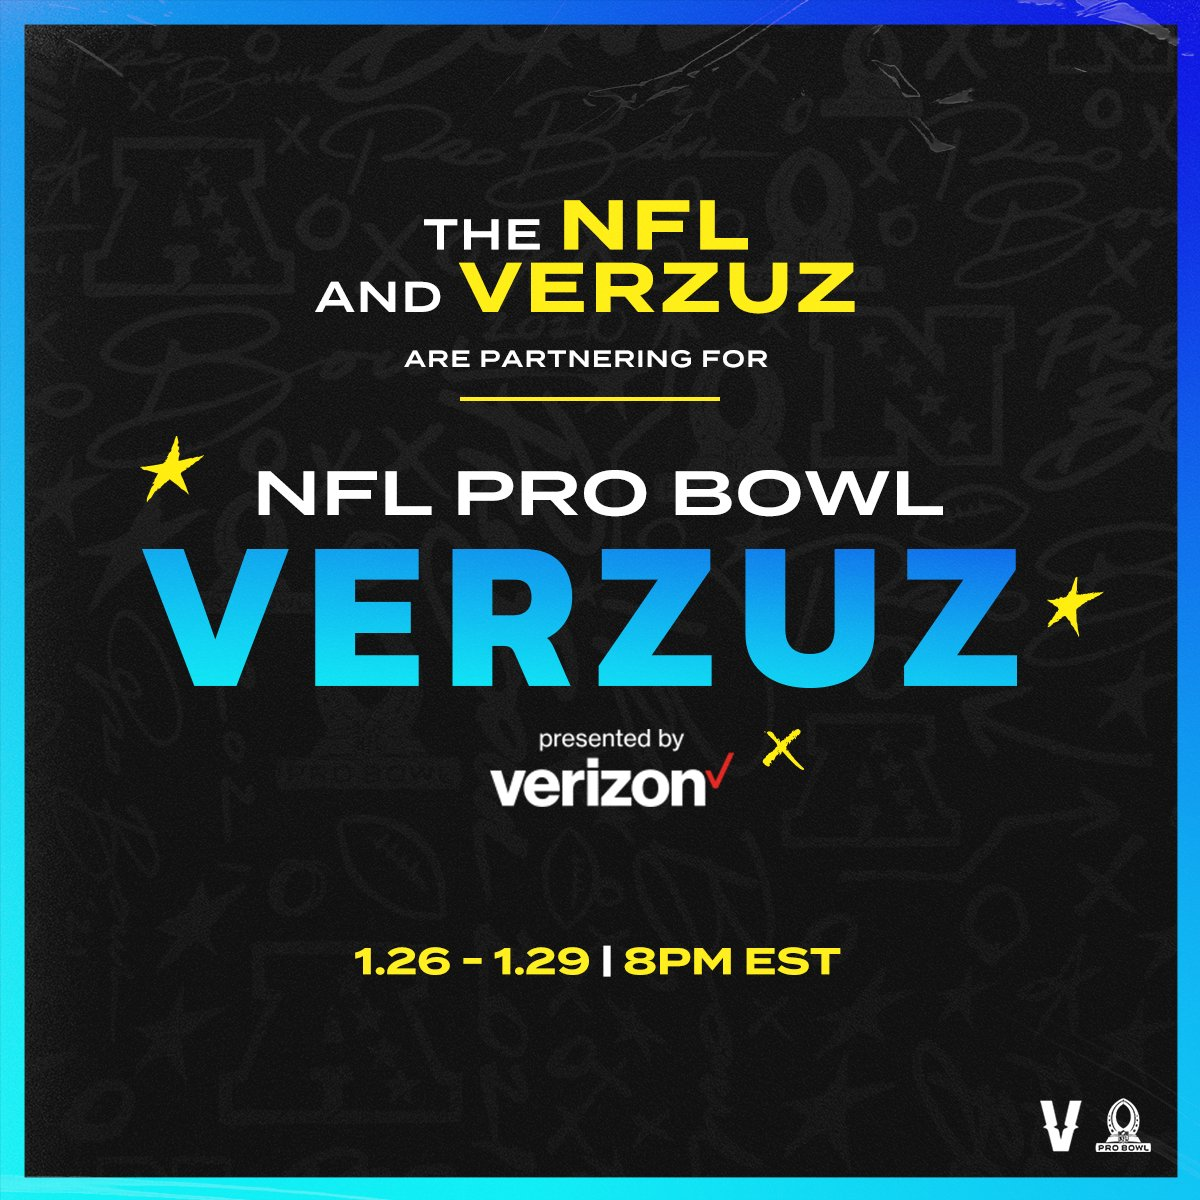 2021 Pro Bowl 🤝 @verzuzonline   From Jan. 26 - Jan. 29, the most dynamic NFL stars face off LIVE in the ultimate highlight competition, showcasing their best on and off-field moments.   Which Pro Bowl players do you want to see go head to head? https://t.co/zuifKUh7mH